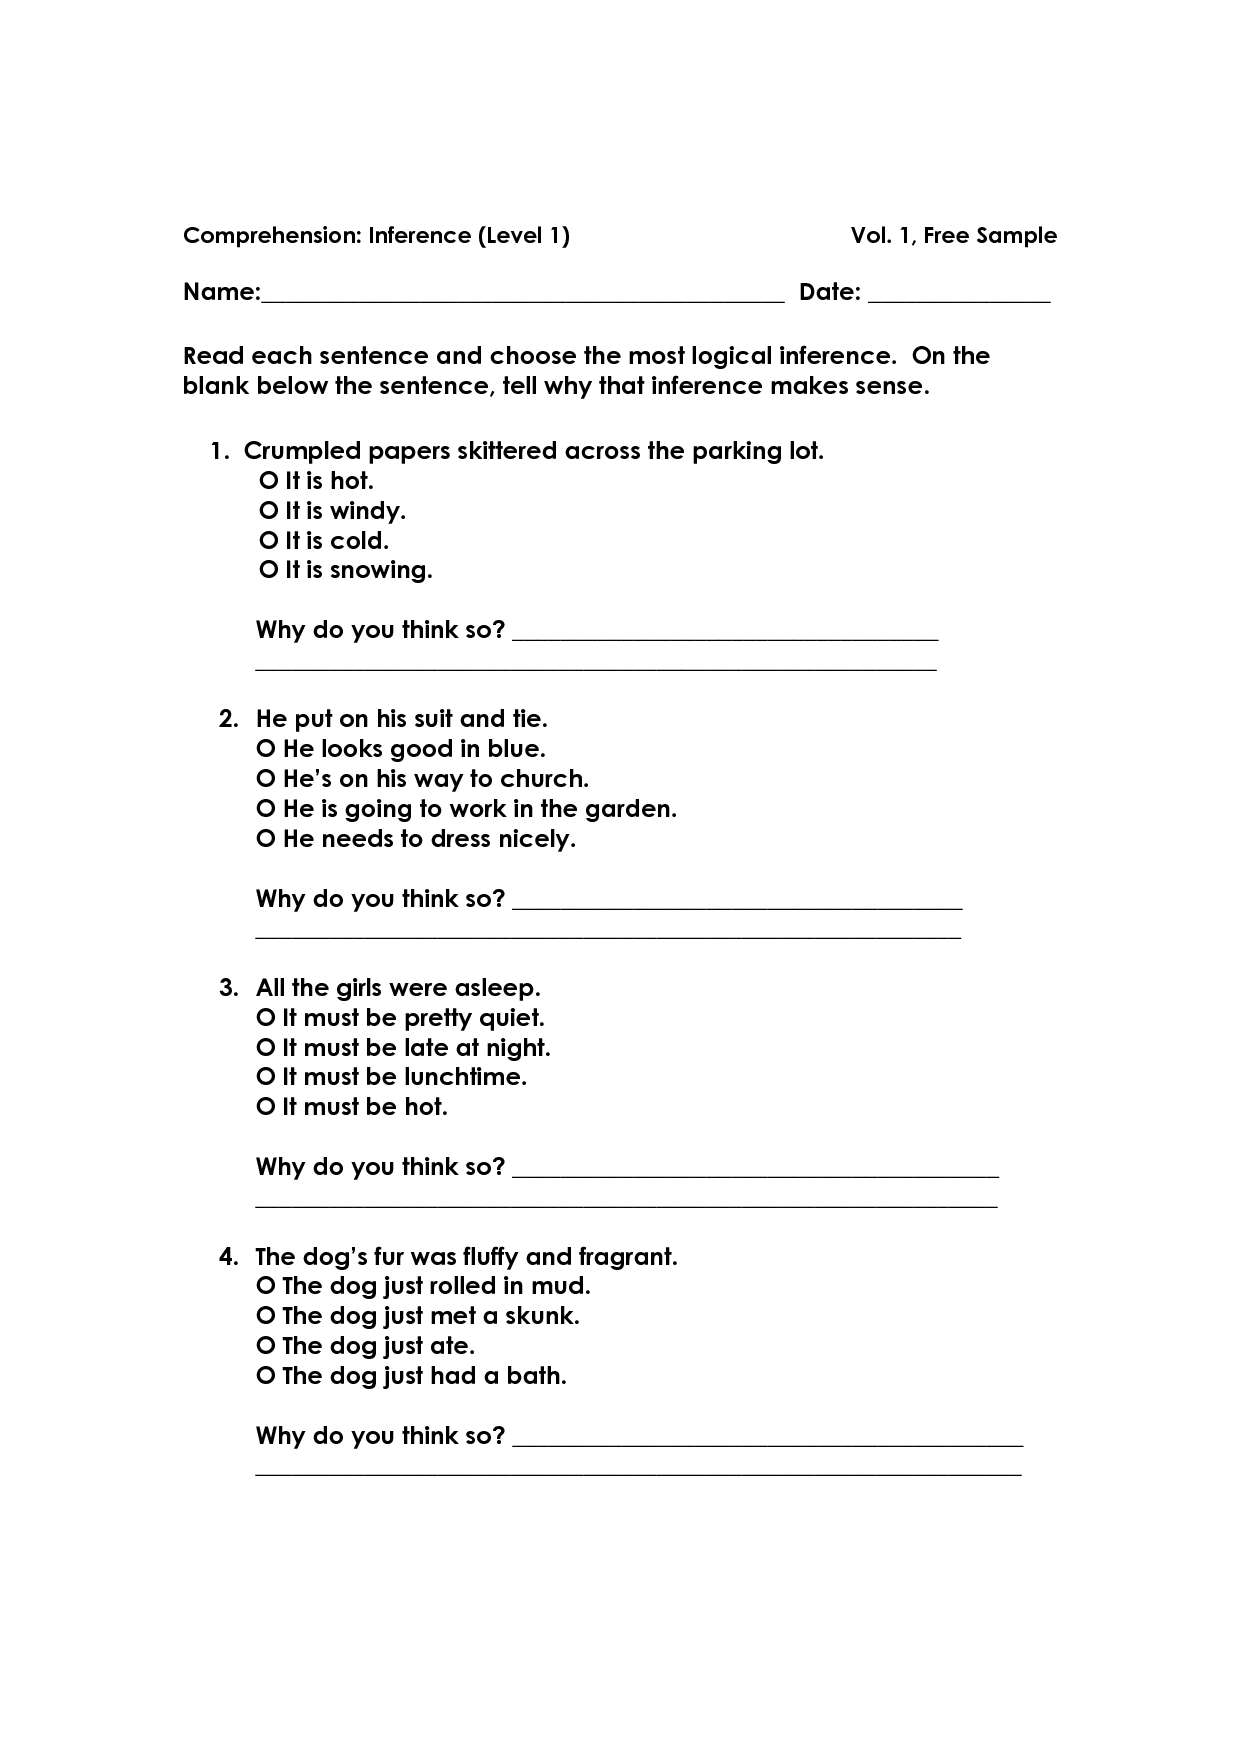 17 Best Images Of Drawing Inferences Worksheets 5th Grade